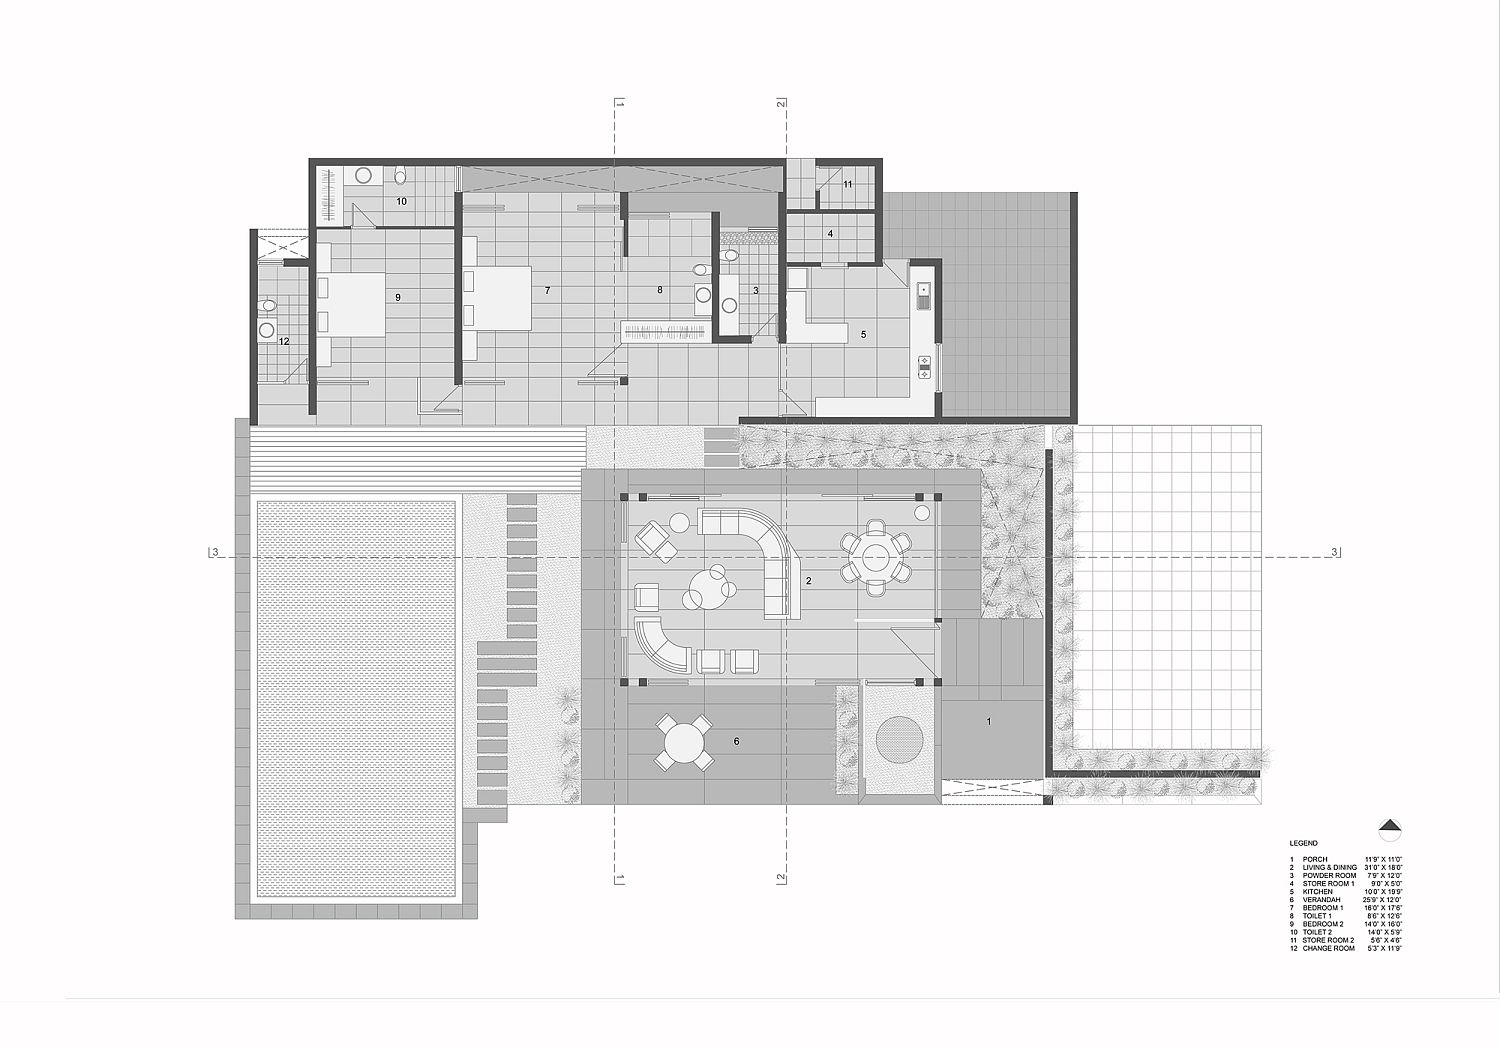 Floor plan of the Open House in Ahmedabad